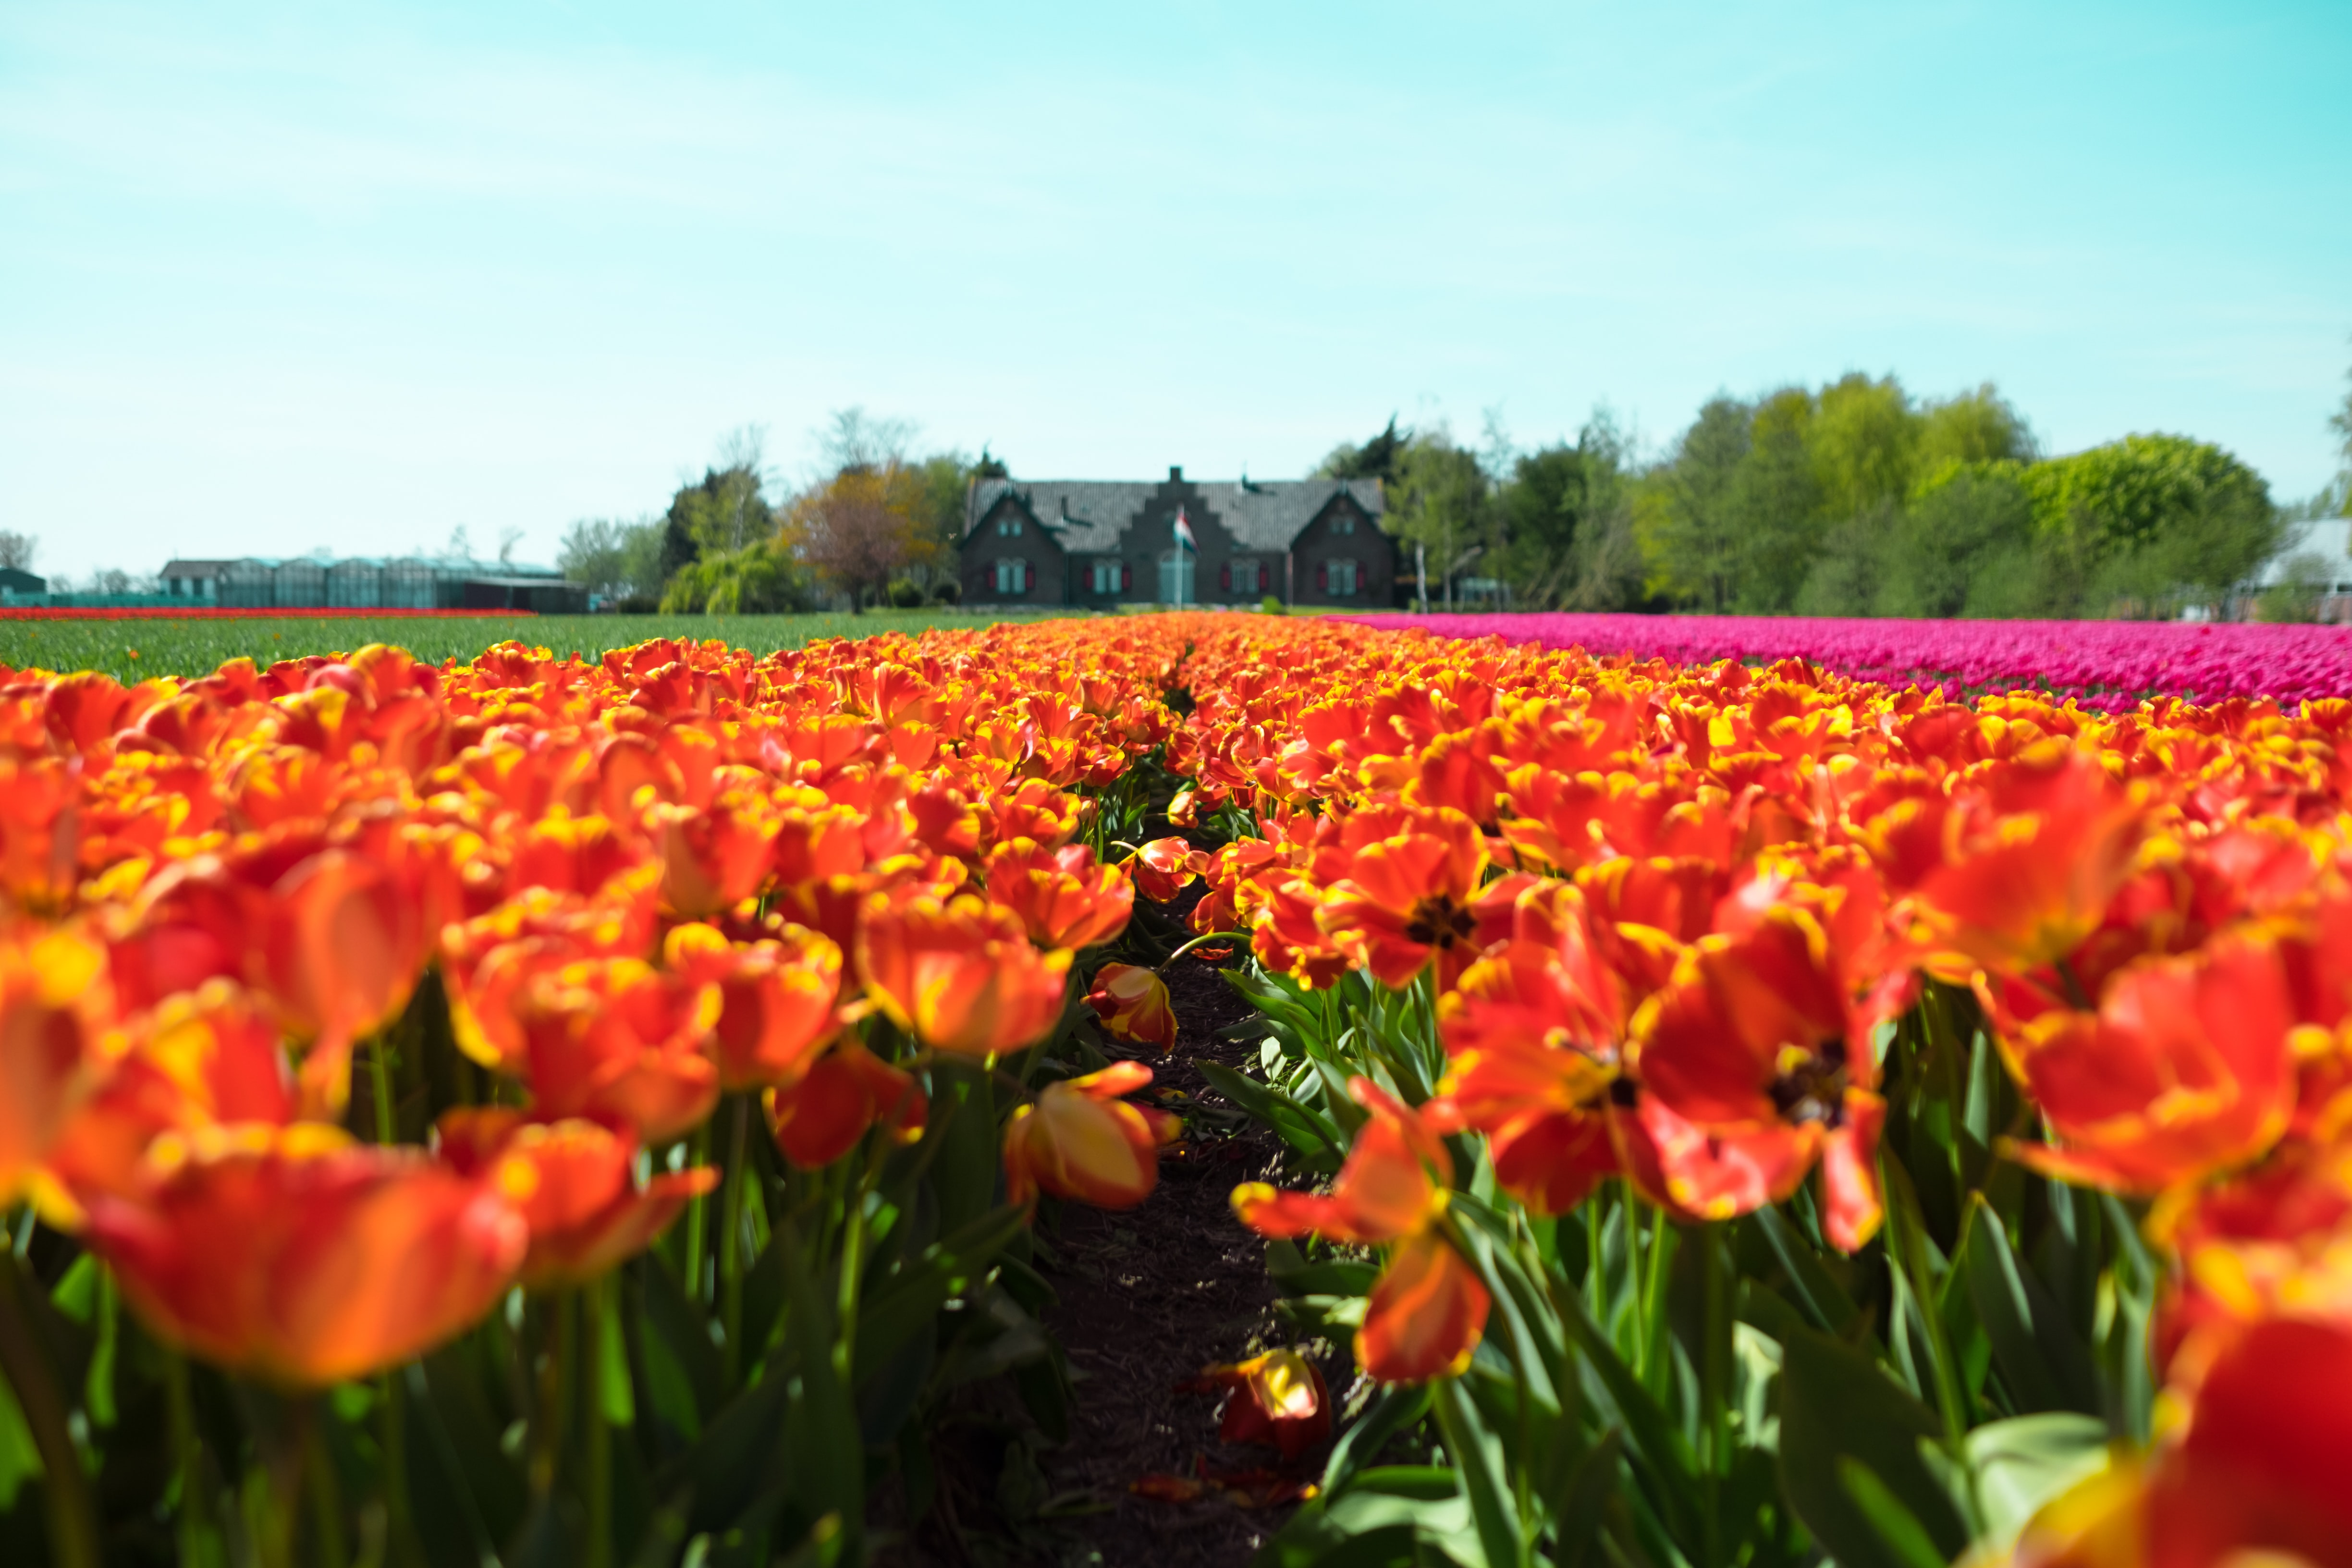 red-and-yellow petaled flower field near house at under teal sky